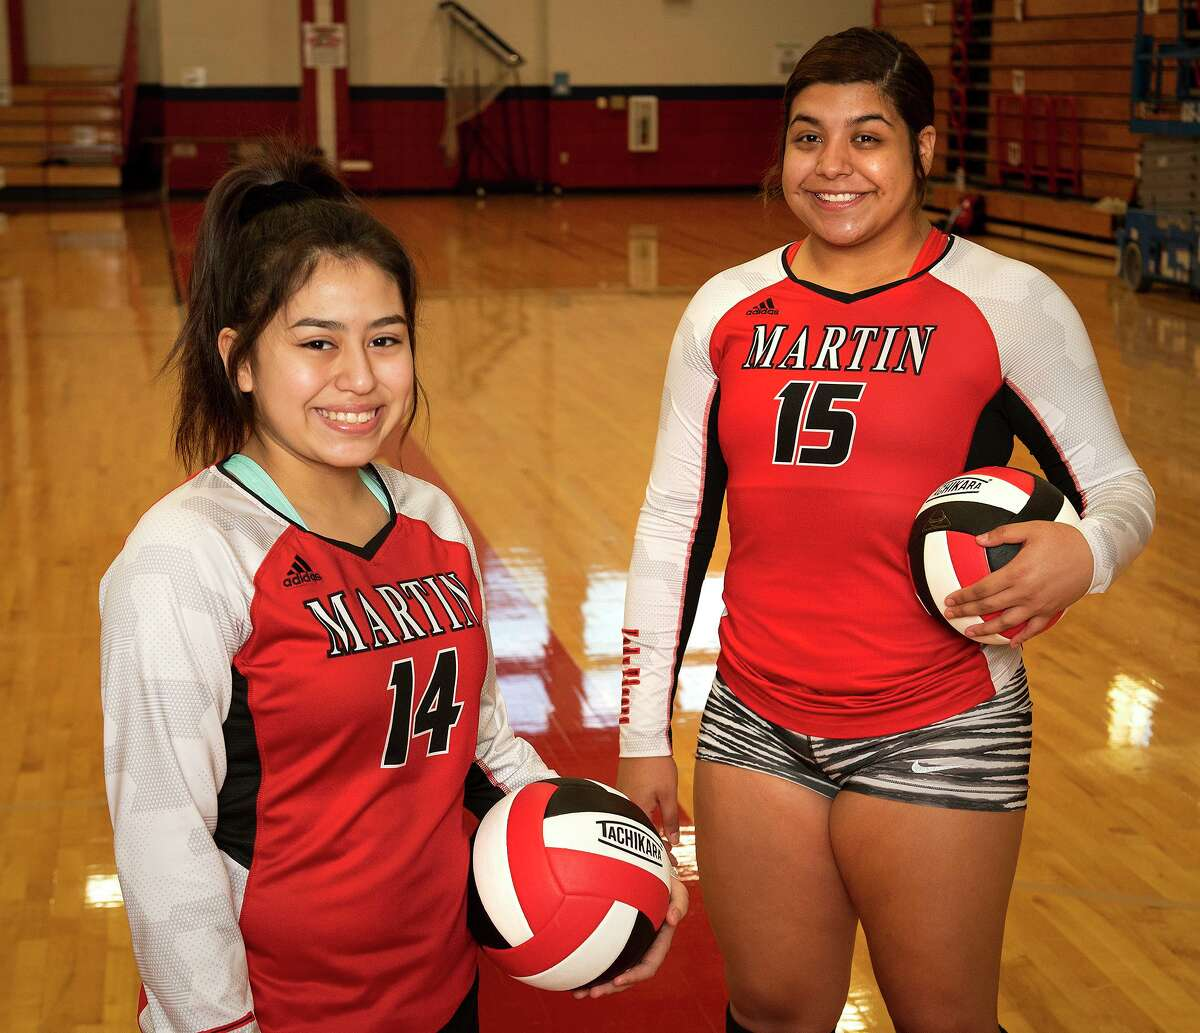 Ivy Liendo and Melanie Duron are helping Martin make a push to get back into the postseason and hang its first banner since 2006.